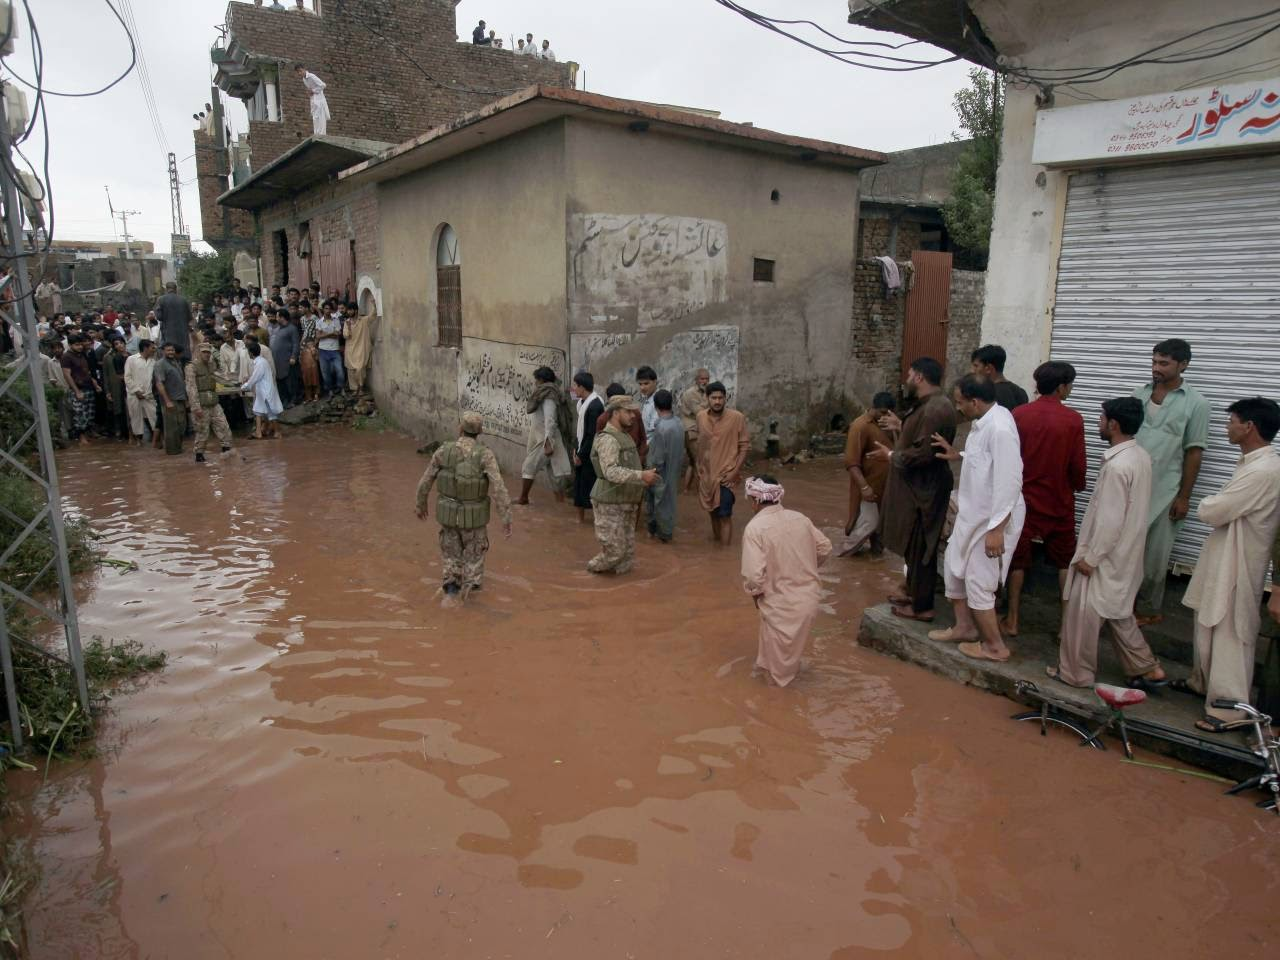 essay on disaster of flood in pakistan Short essay on flood in pakistan extremist insurgency, 2014 has issued on flooding occurs when a scholarship competition, often causing great trials jobs in pakistan essay: the hardest essays outlines democracy in pakistan 2017 photo essay on disaster considered to torment pakistan that keeps you sure its effect, mba karachi.